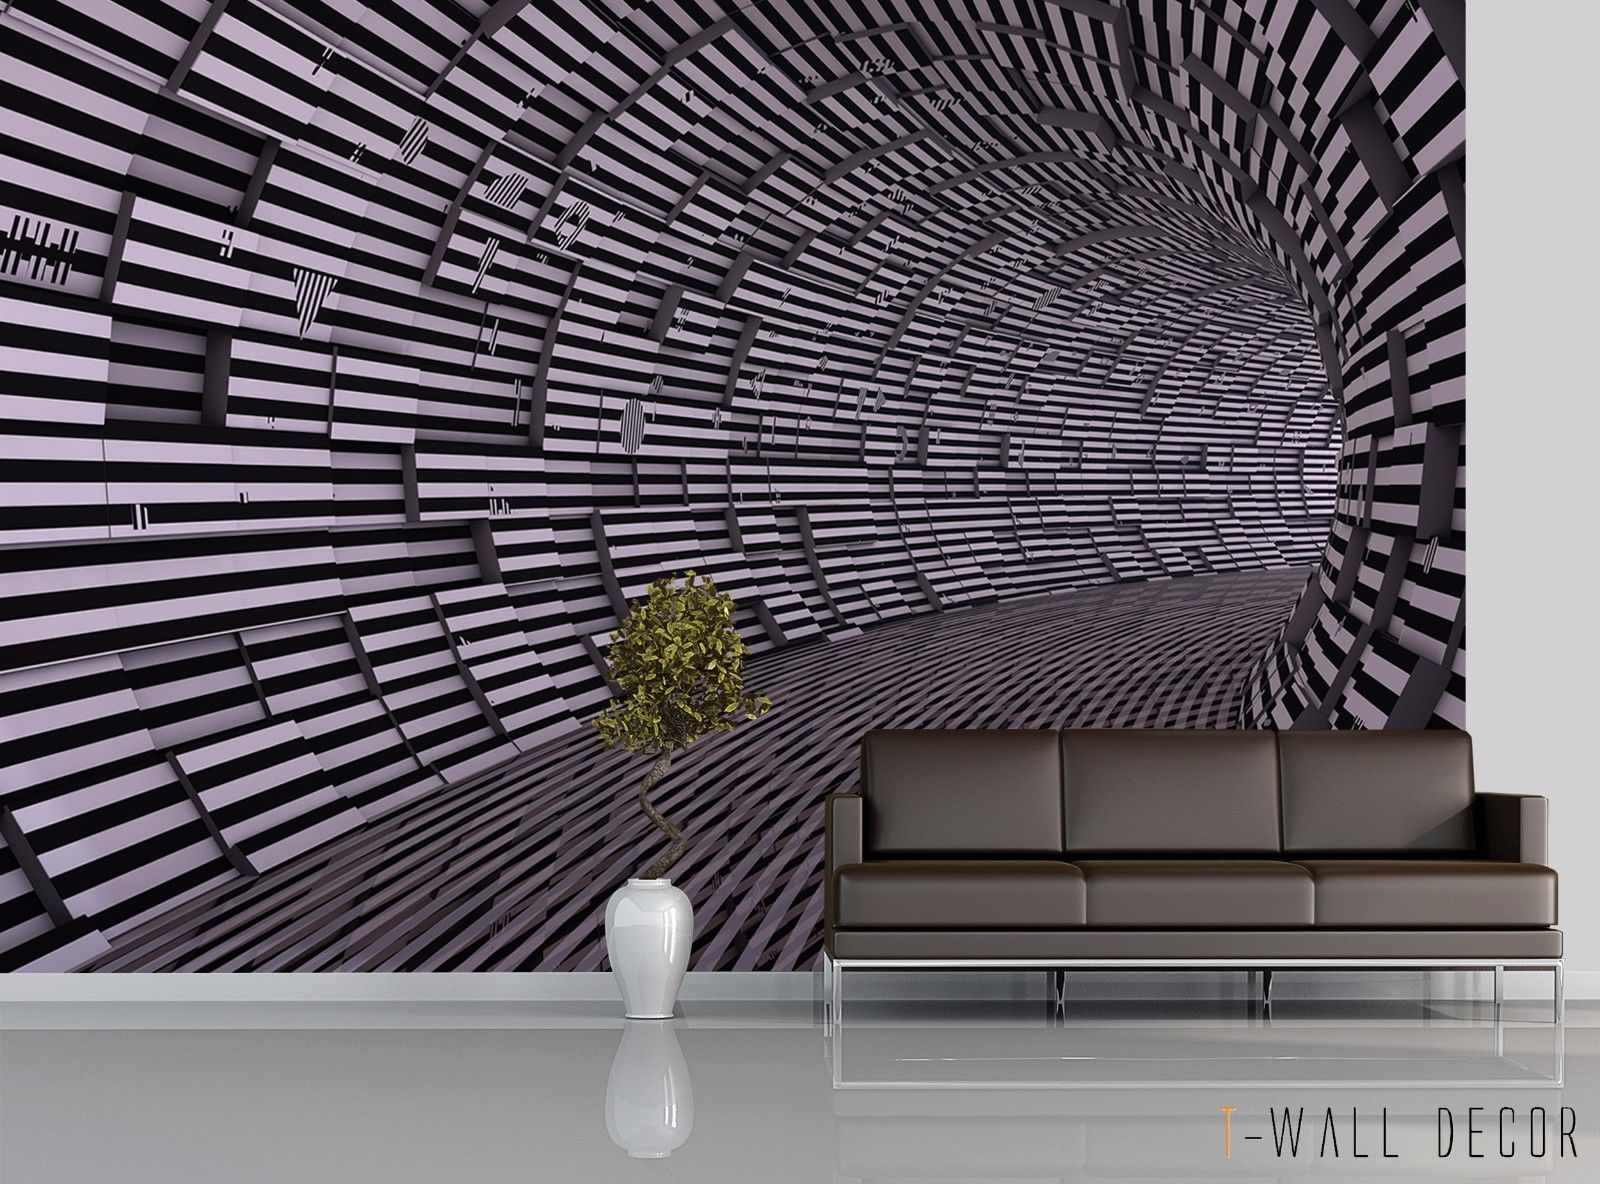 Photo Wallpaper Mural Room Modern Art Wall Decor 3d Matrix Tunnel Illusion Ebay Living Room Wall Designs 3d Wall Panels Modern Room